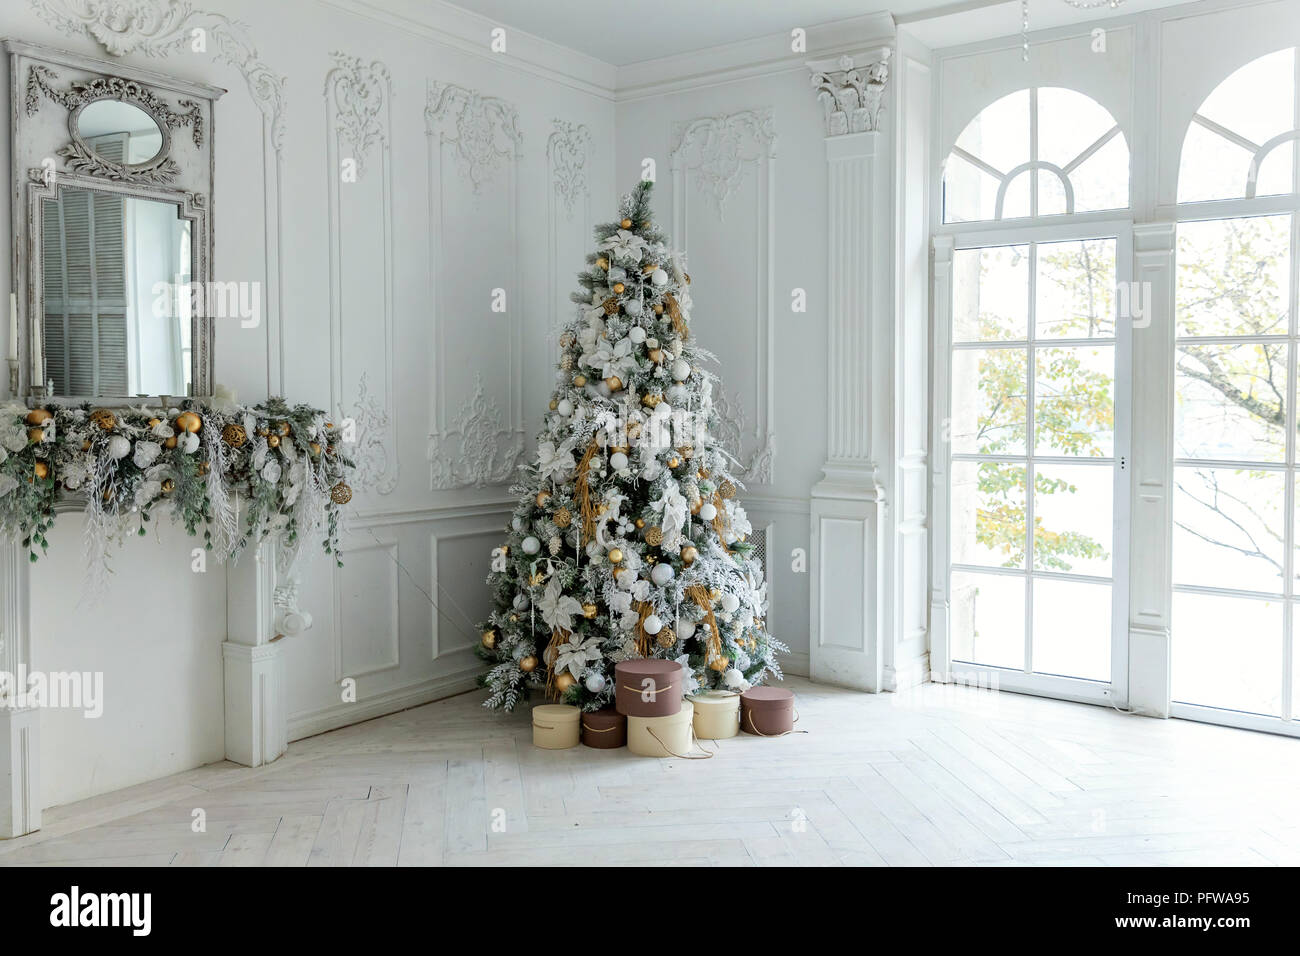 classic christmas and new year decorated interior room with presents and new year tree christmas tree with white and gold decorations